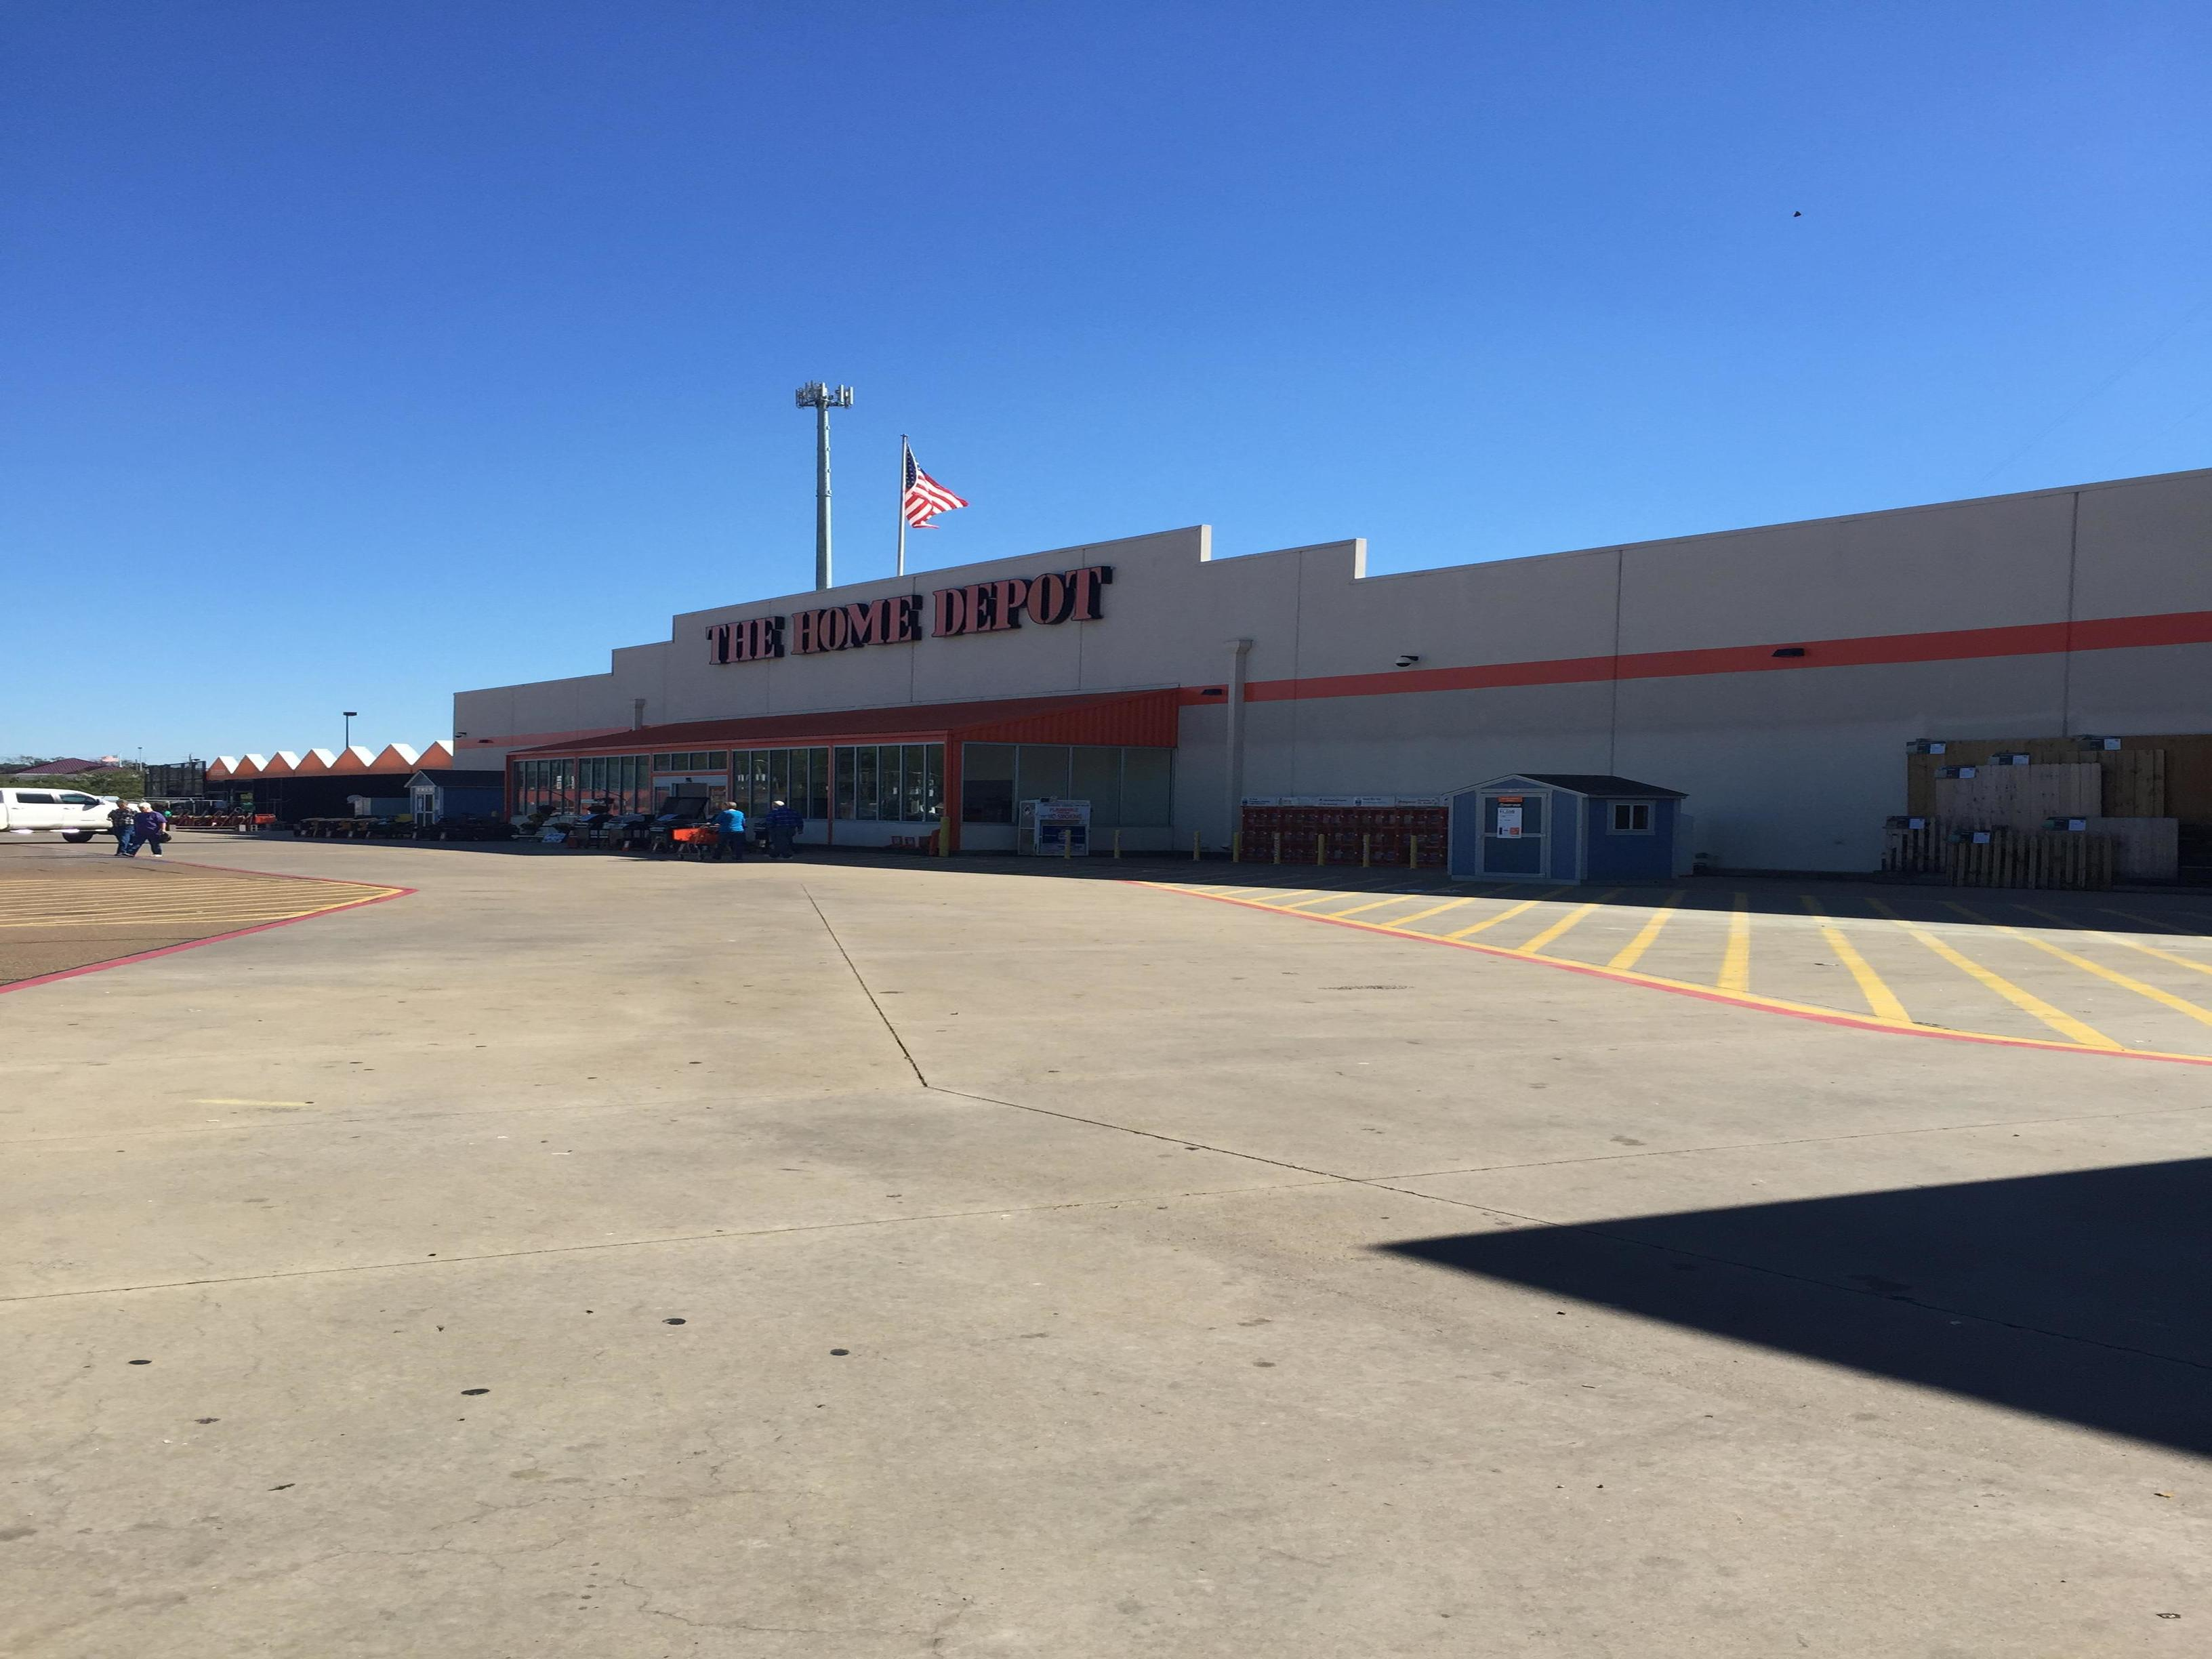 Home Depot El Dorado Arkansas Hours